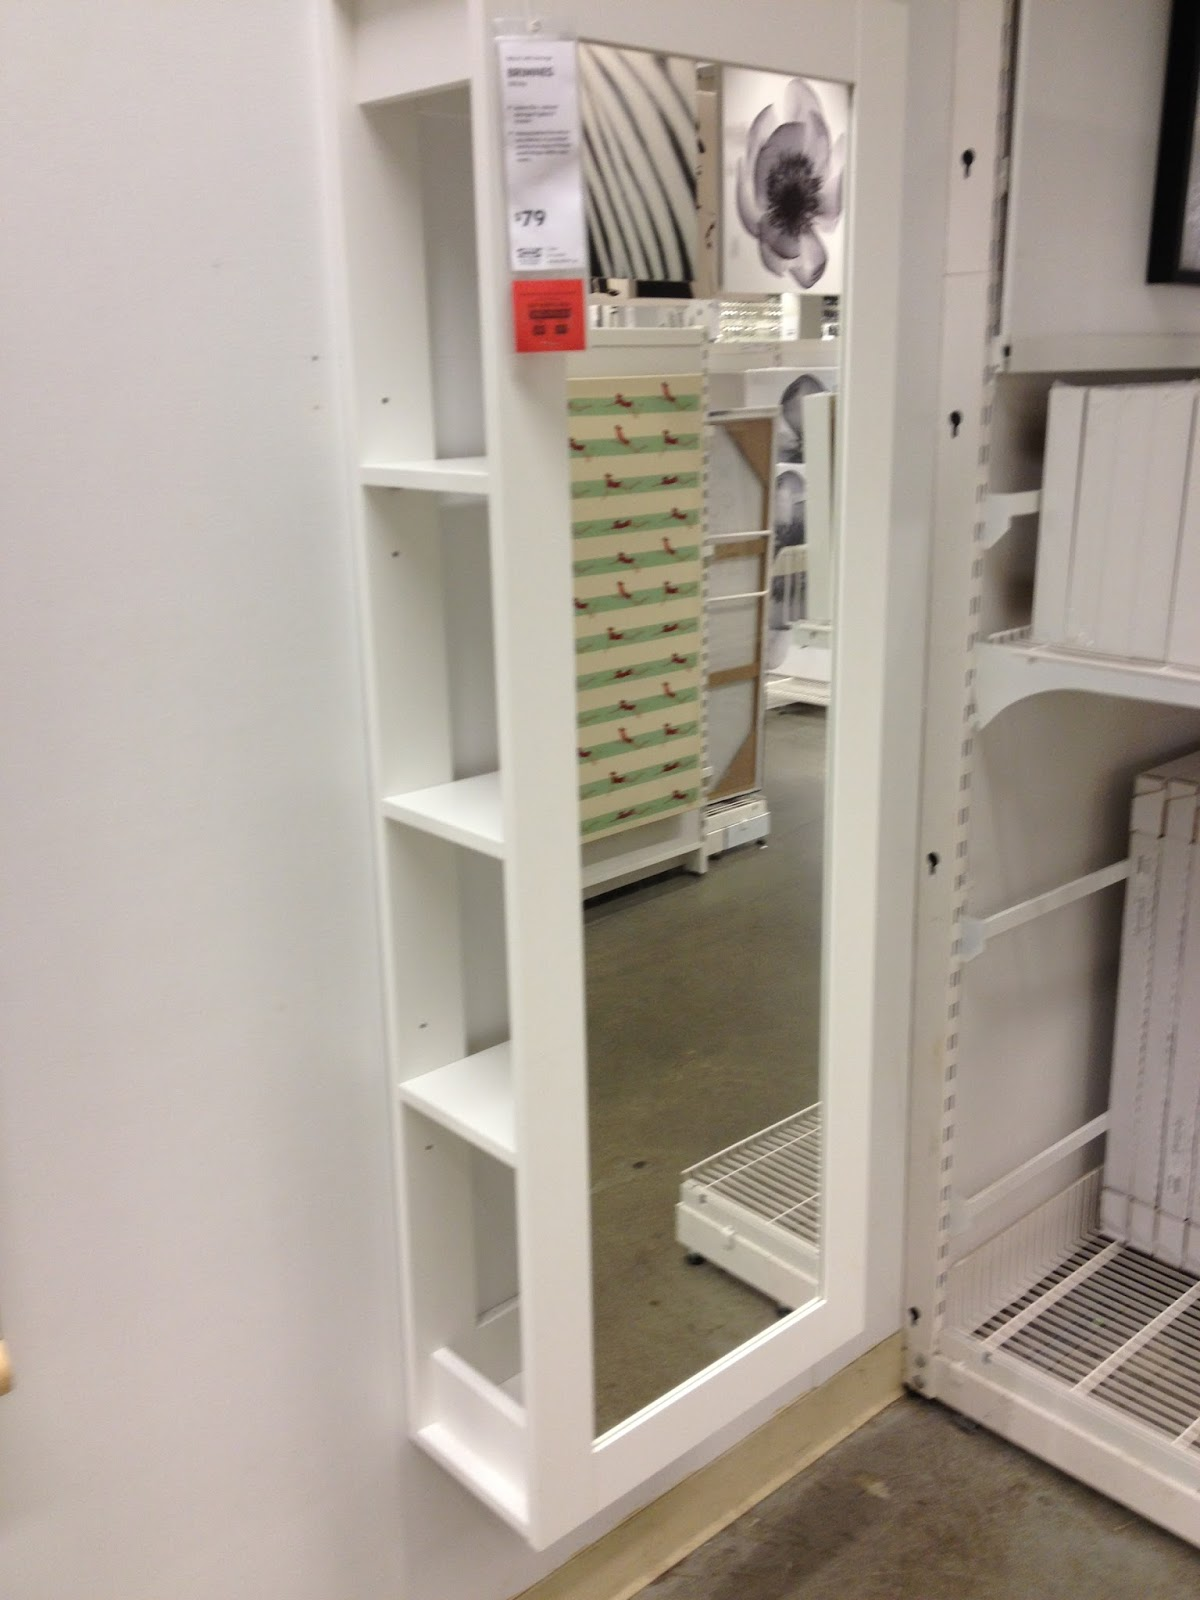 How To Organize Laundry Room Shelves